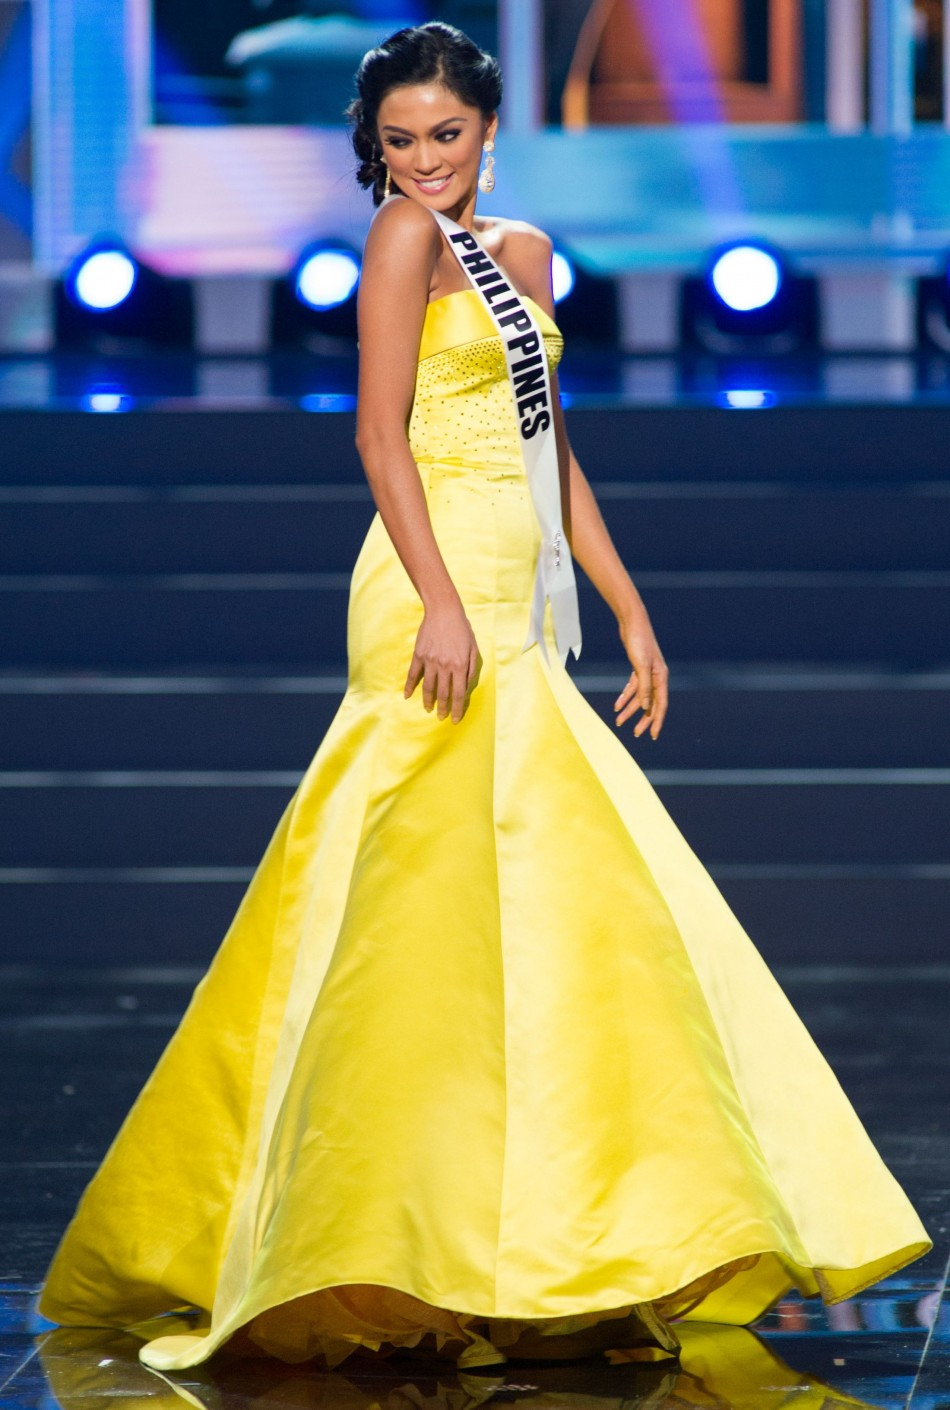 Ariella Arida, Miss Universe Philippines 2013. (Photo: MIss Universe Organization L.P., LLLP)